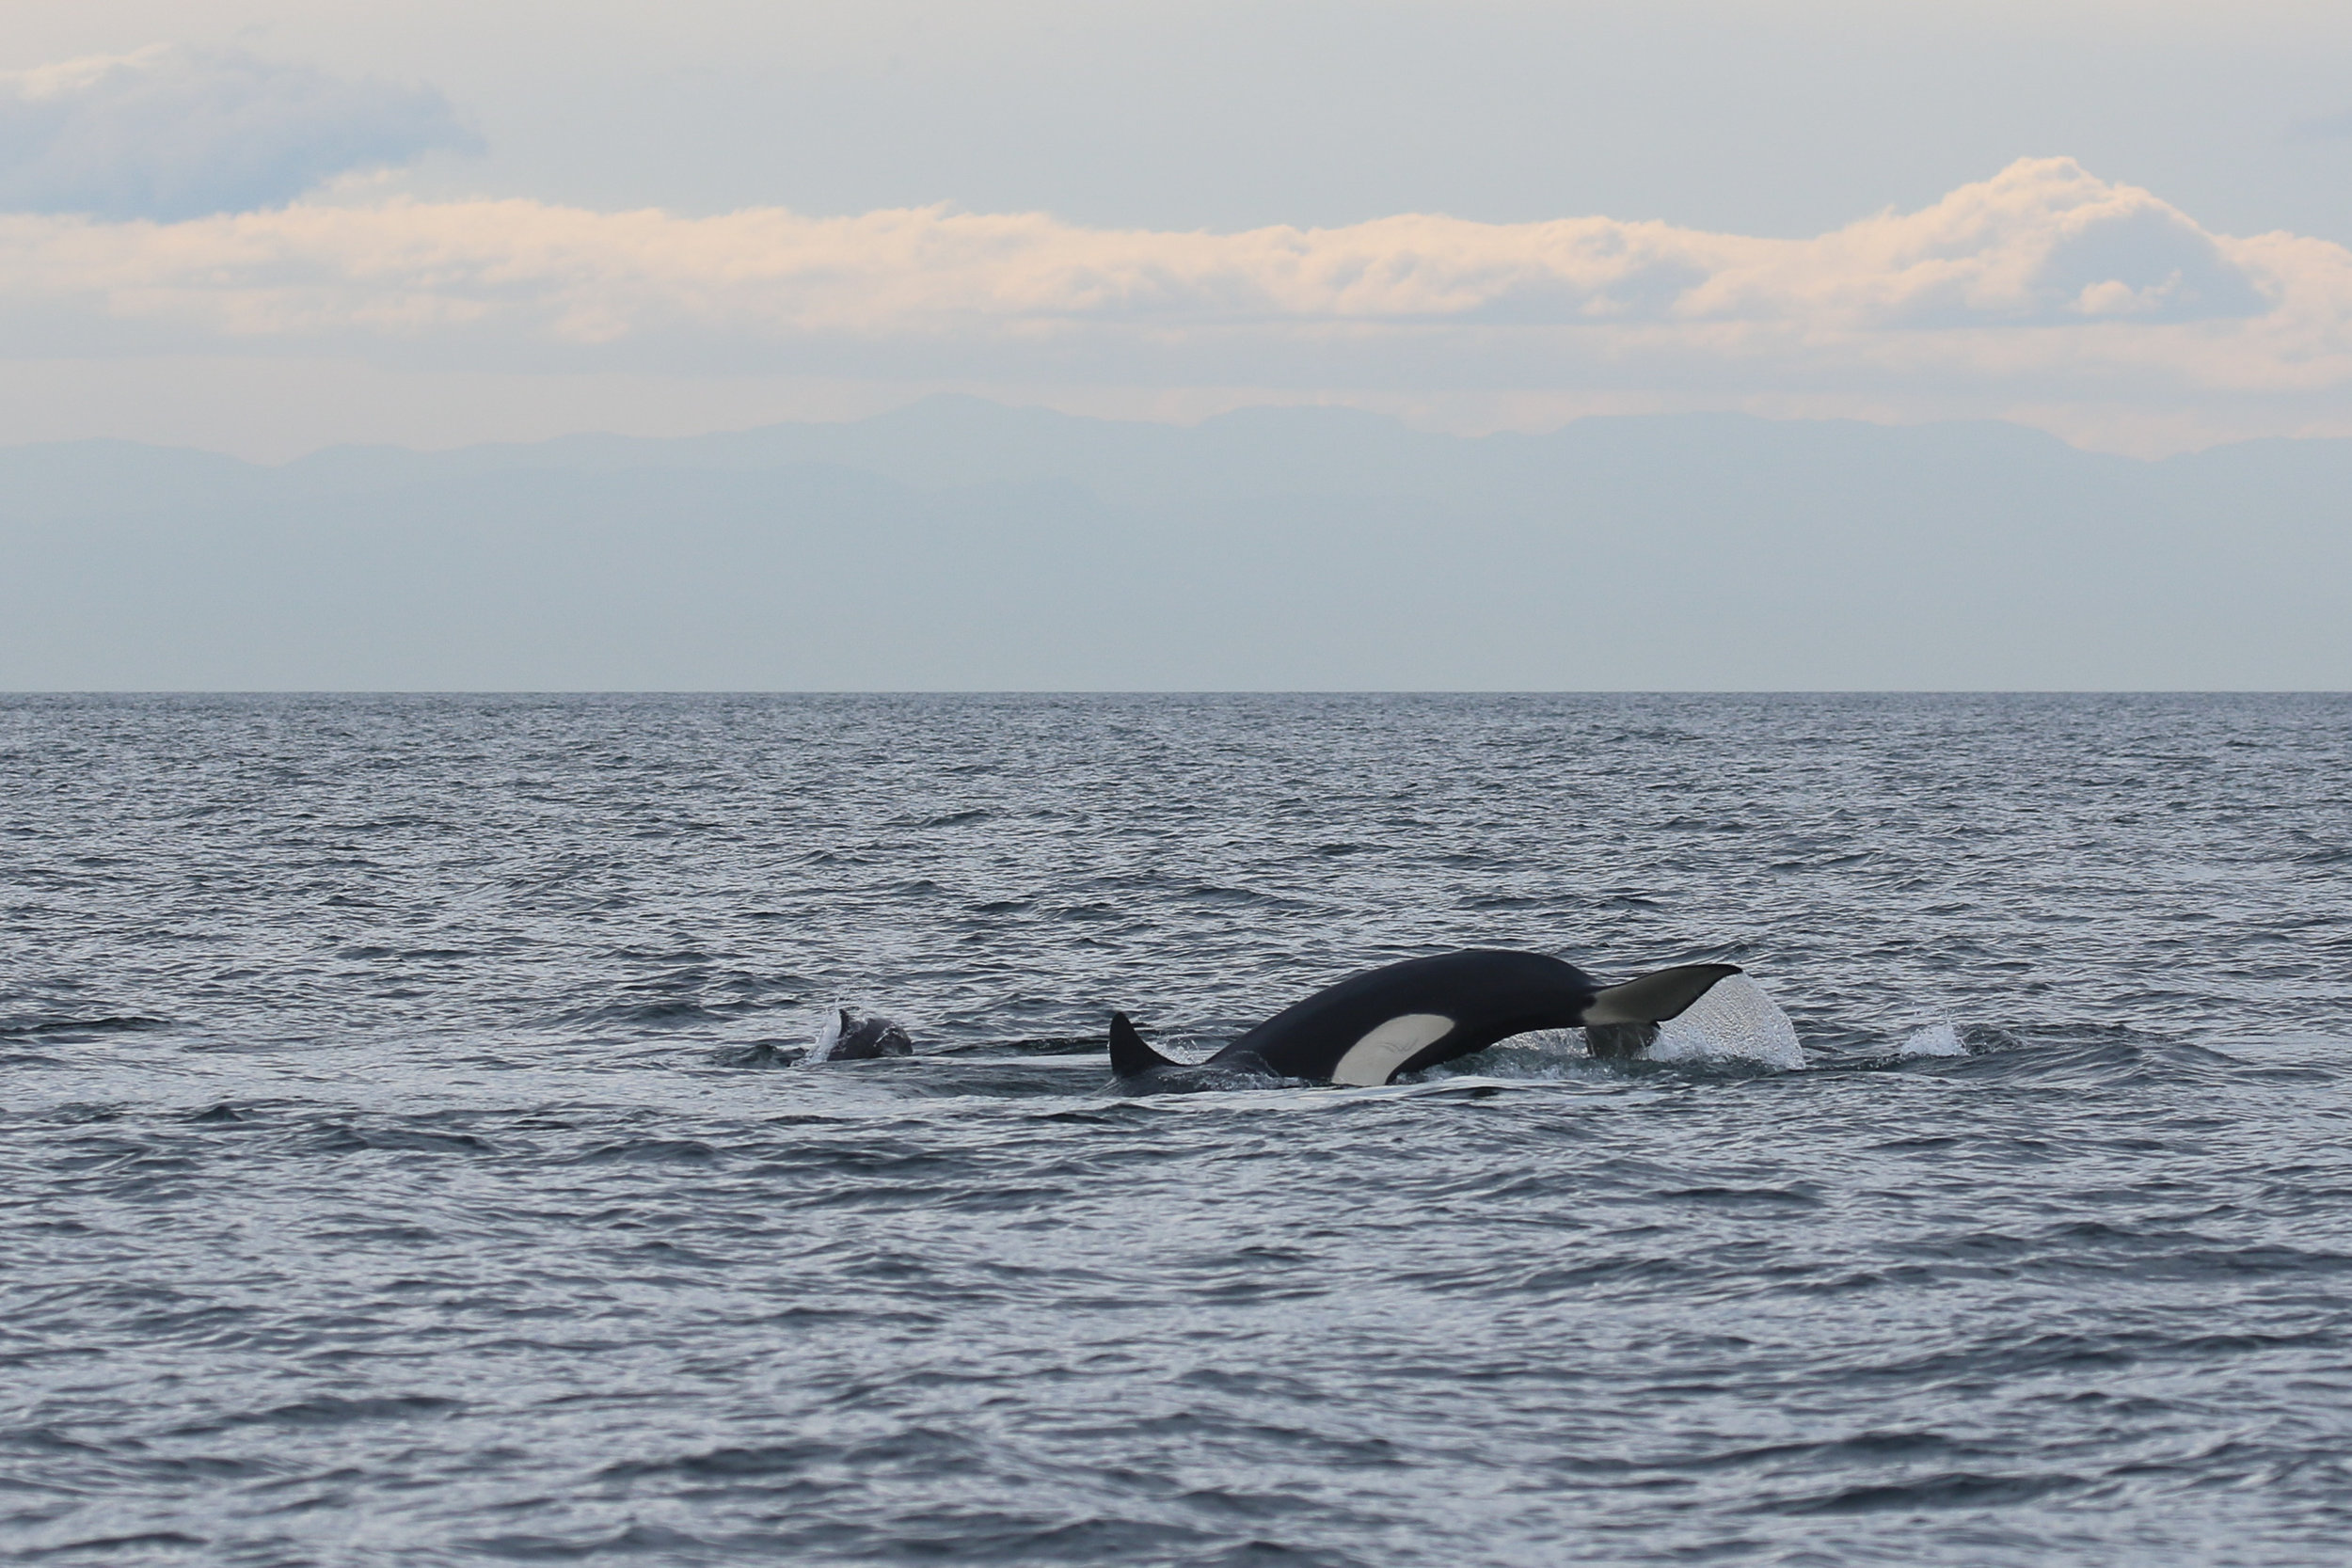 Look how small the porpoise is next to the smallish orca! Photo by Rodrigo (3:30)